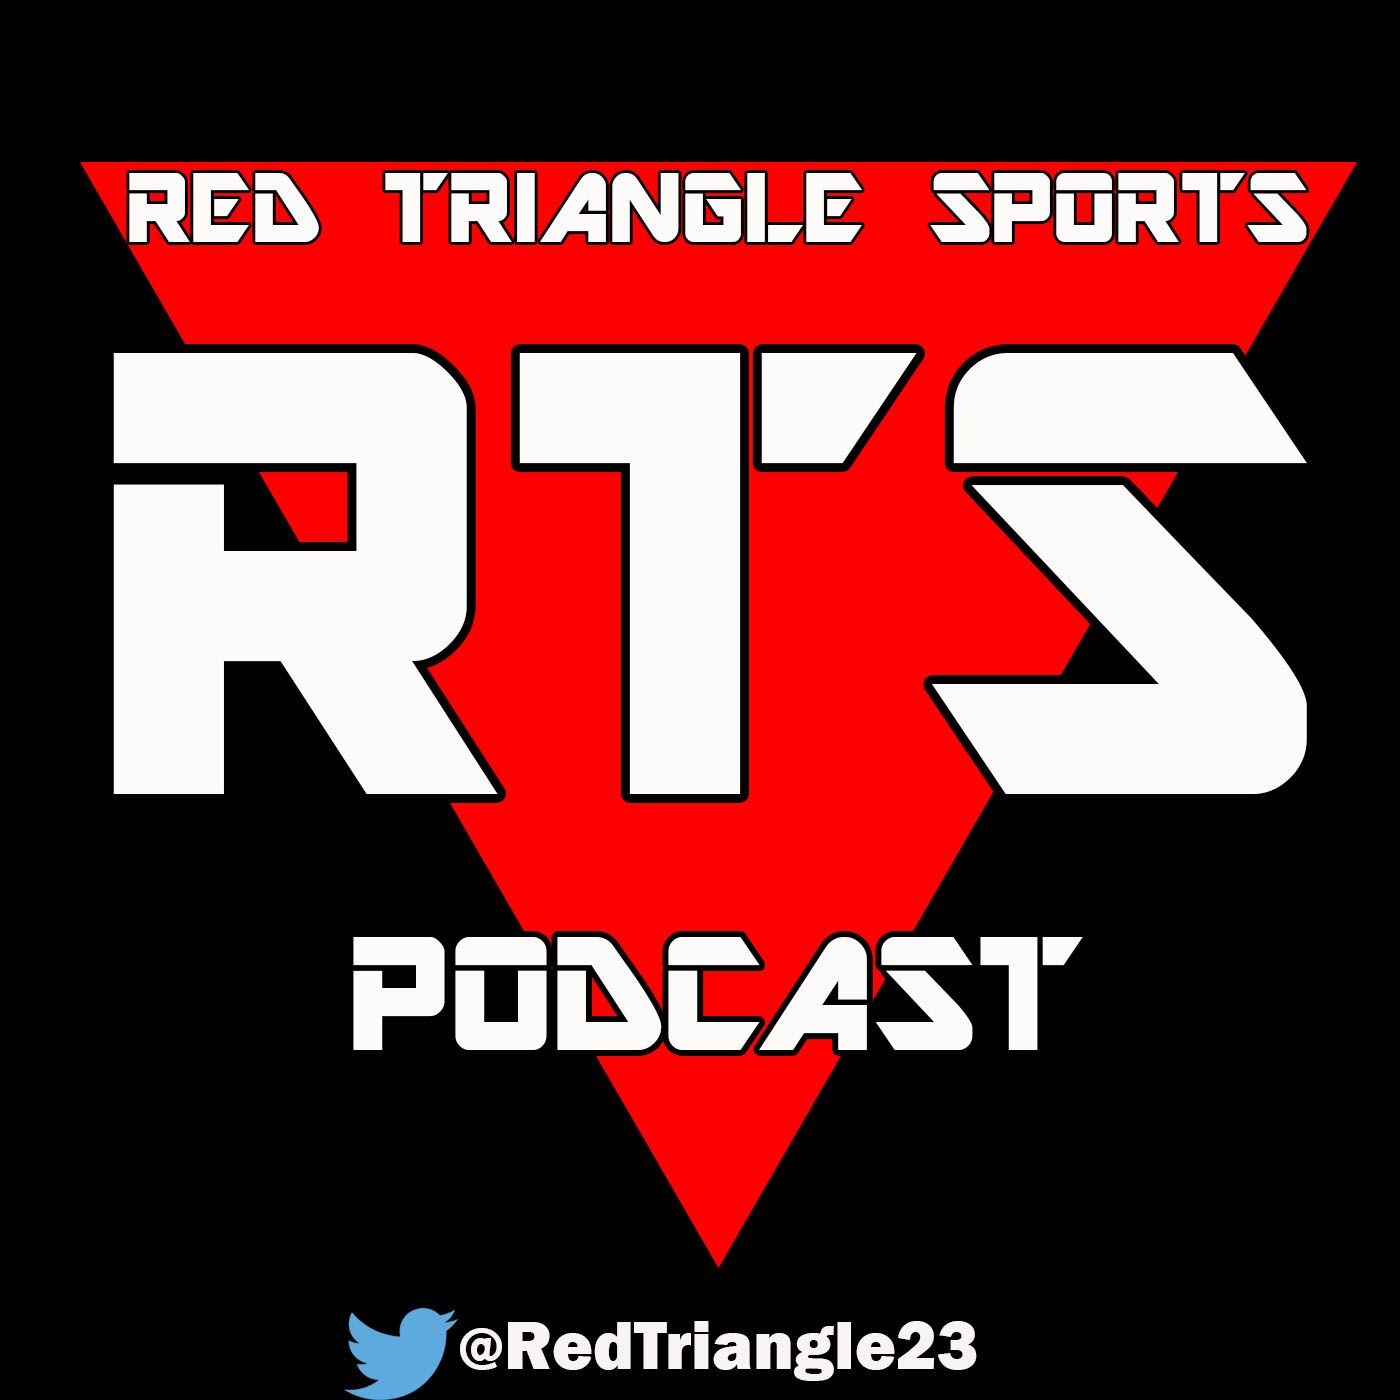 Red Triangle Sports